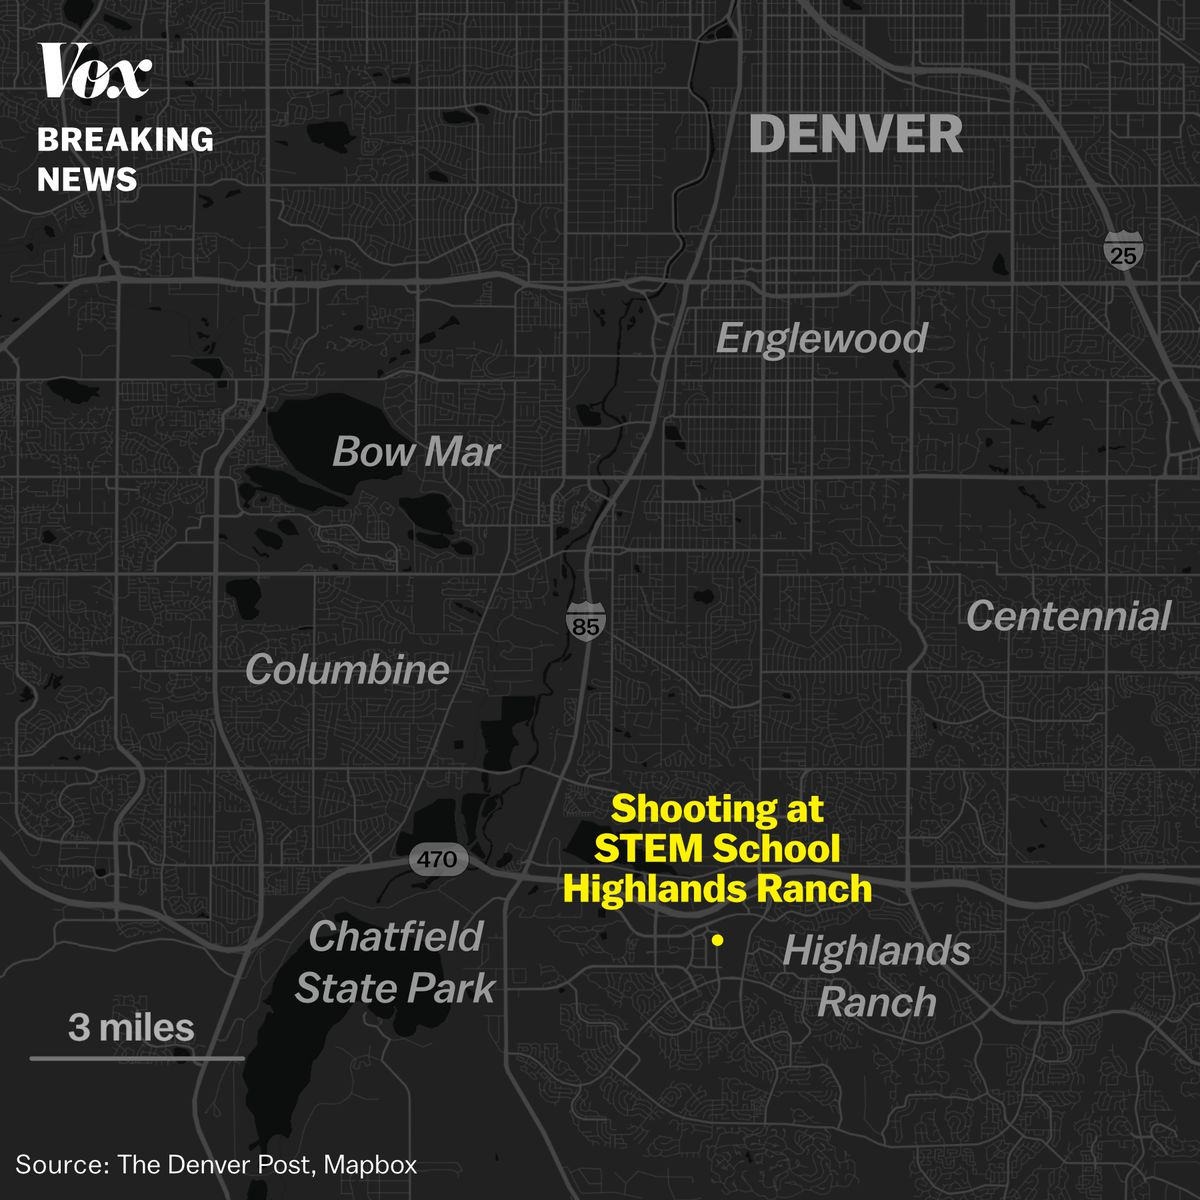 Denver Shooting Devon: Colorado Shooting At STEM School Highlands Ranch: What We